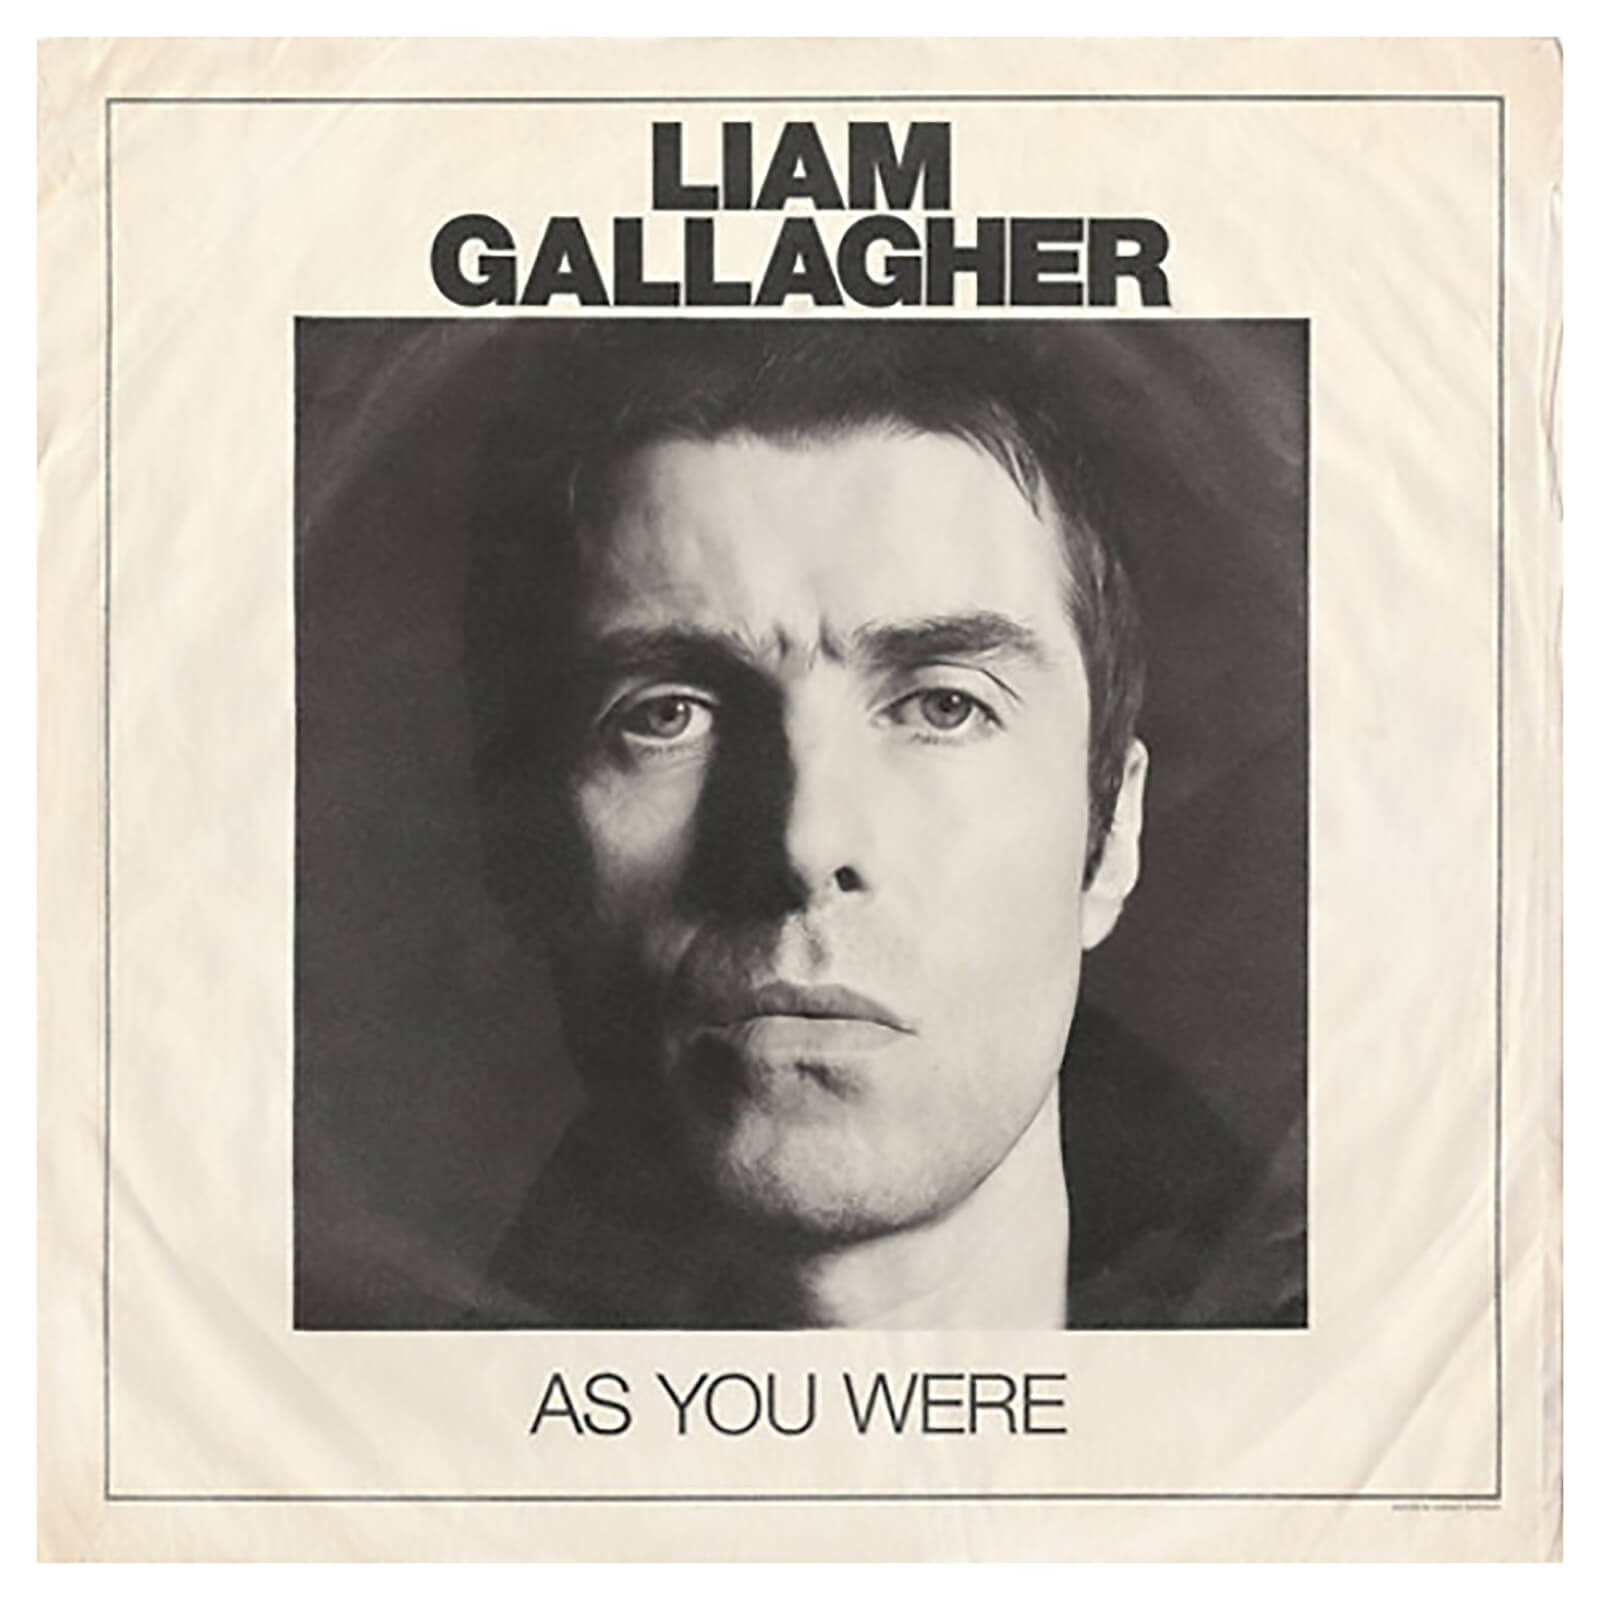 Liam Gallagher - As You Were - Vinyl